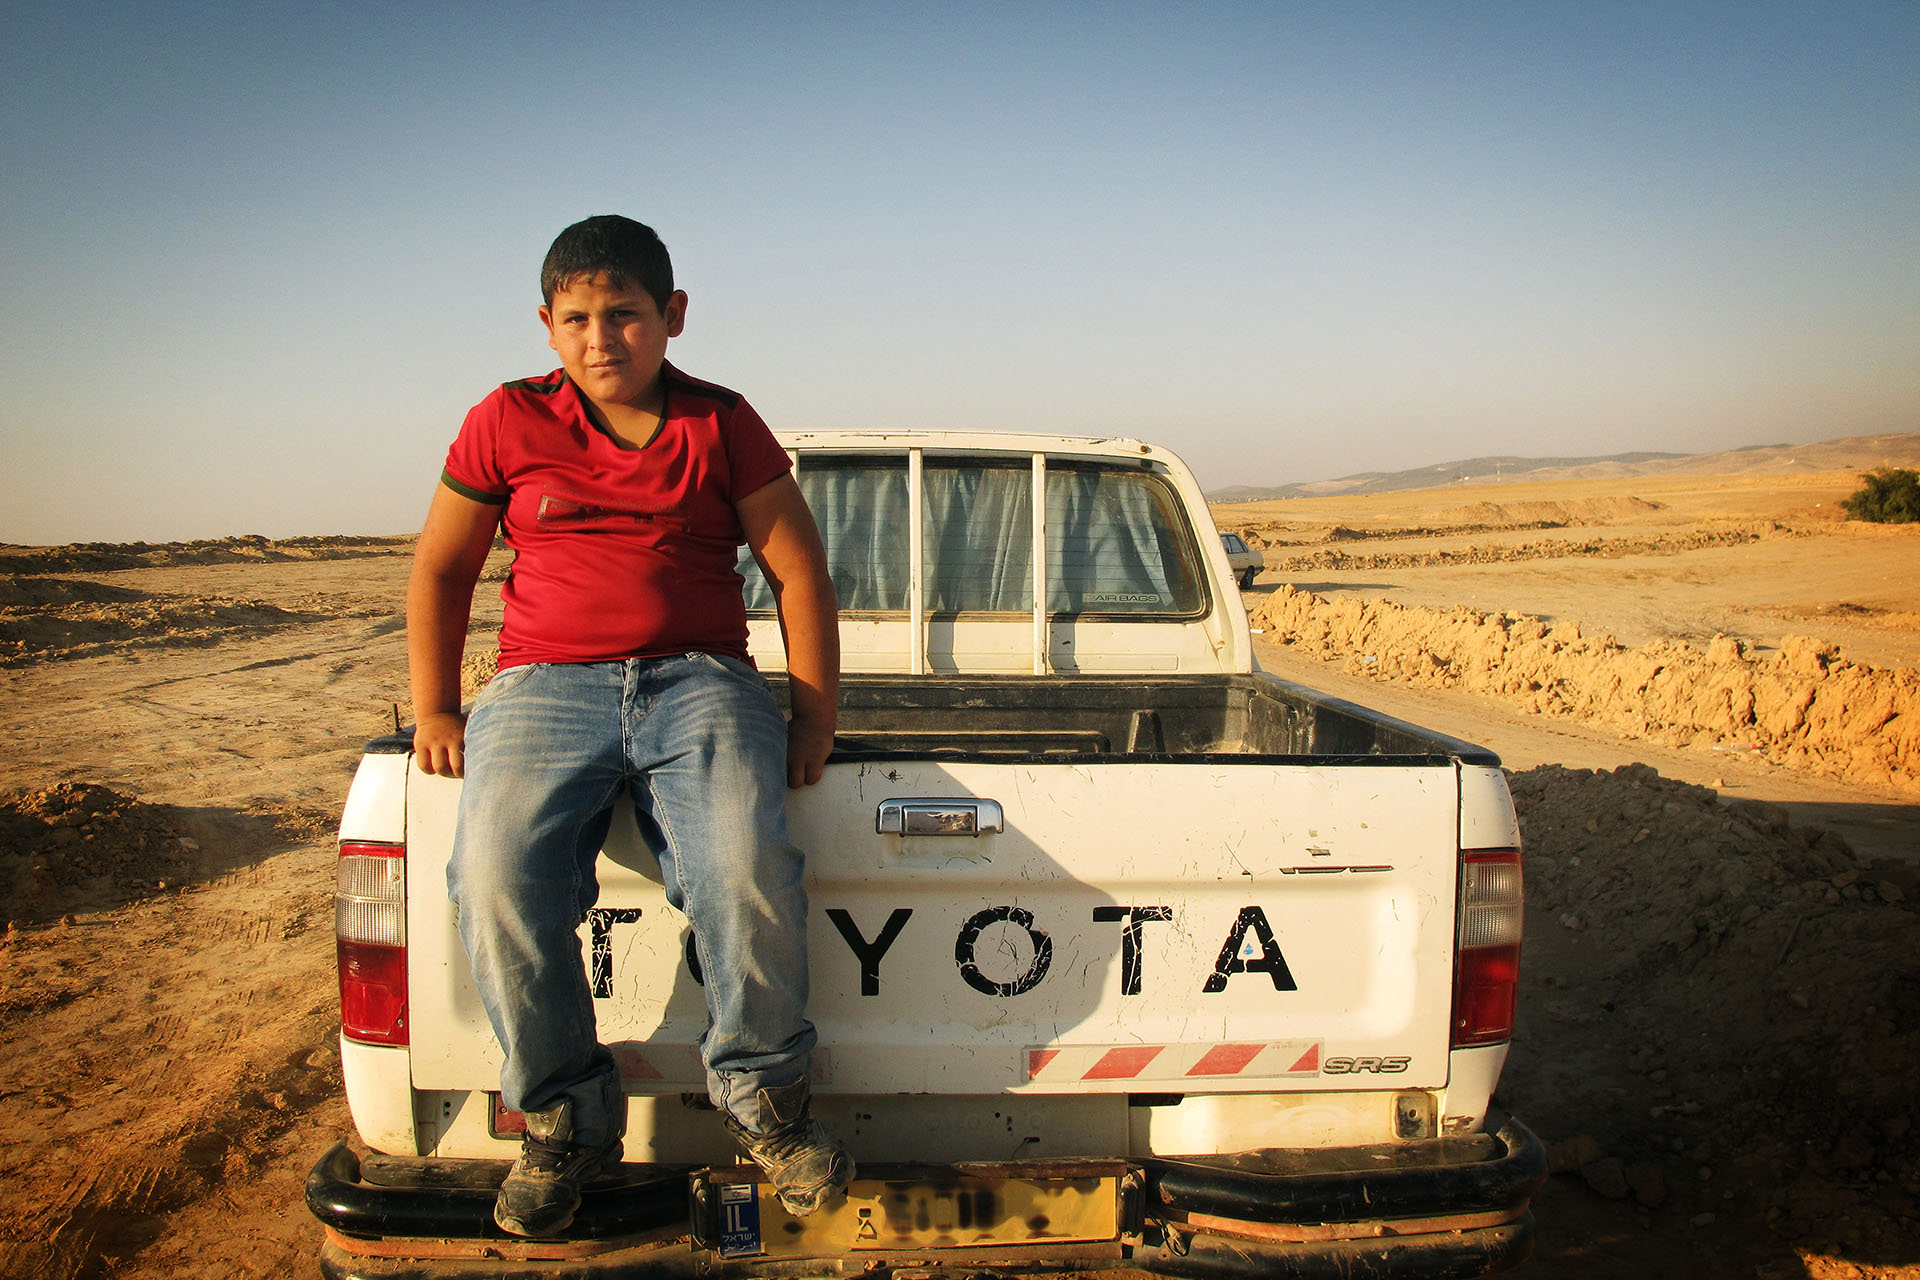 Mohammed on a pick up track in the vast openness of the desert. Al Araqib, July 2010